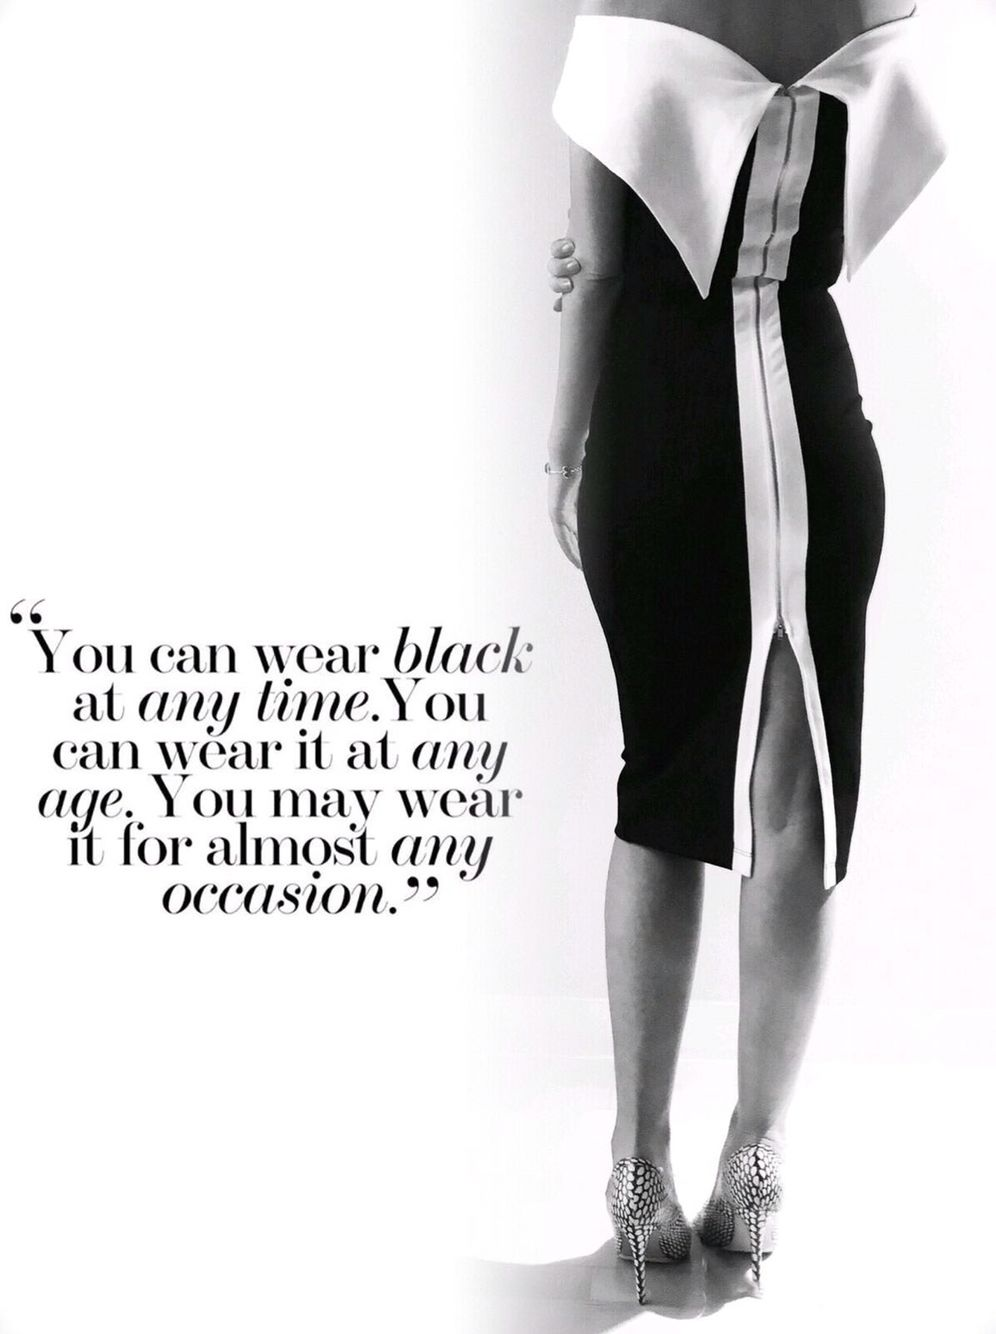 All About Black Color Black Quotes About Black Black And White Dress White Dress Quotes Black N White Dress Black Quotes [ 1334 x 996 Pixel ]